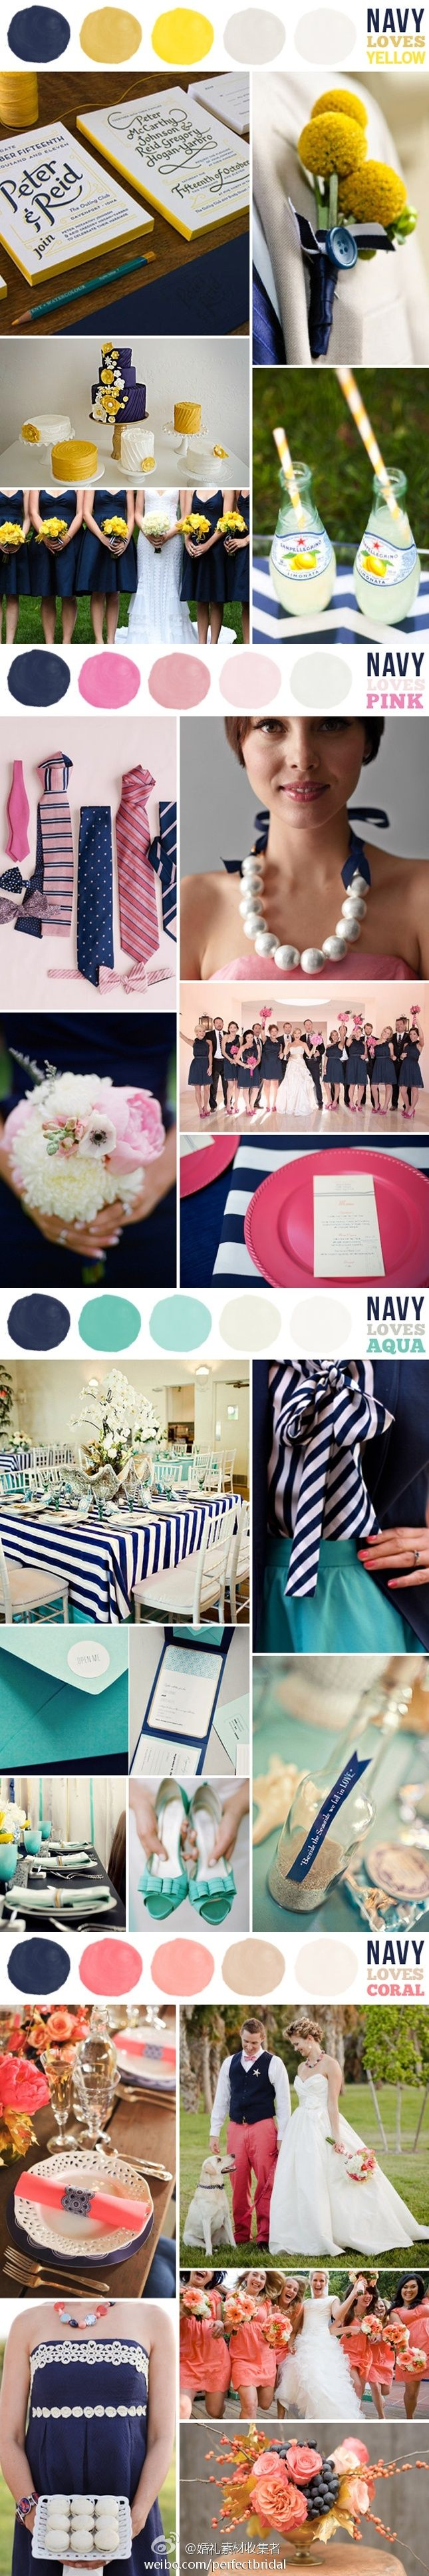 Navy+colors